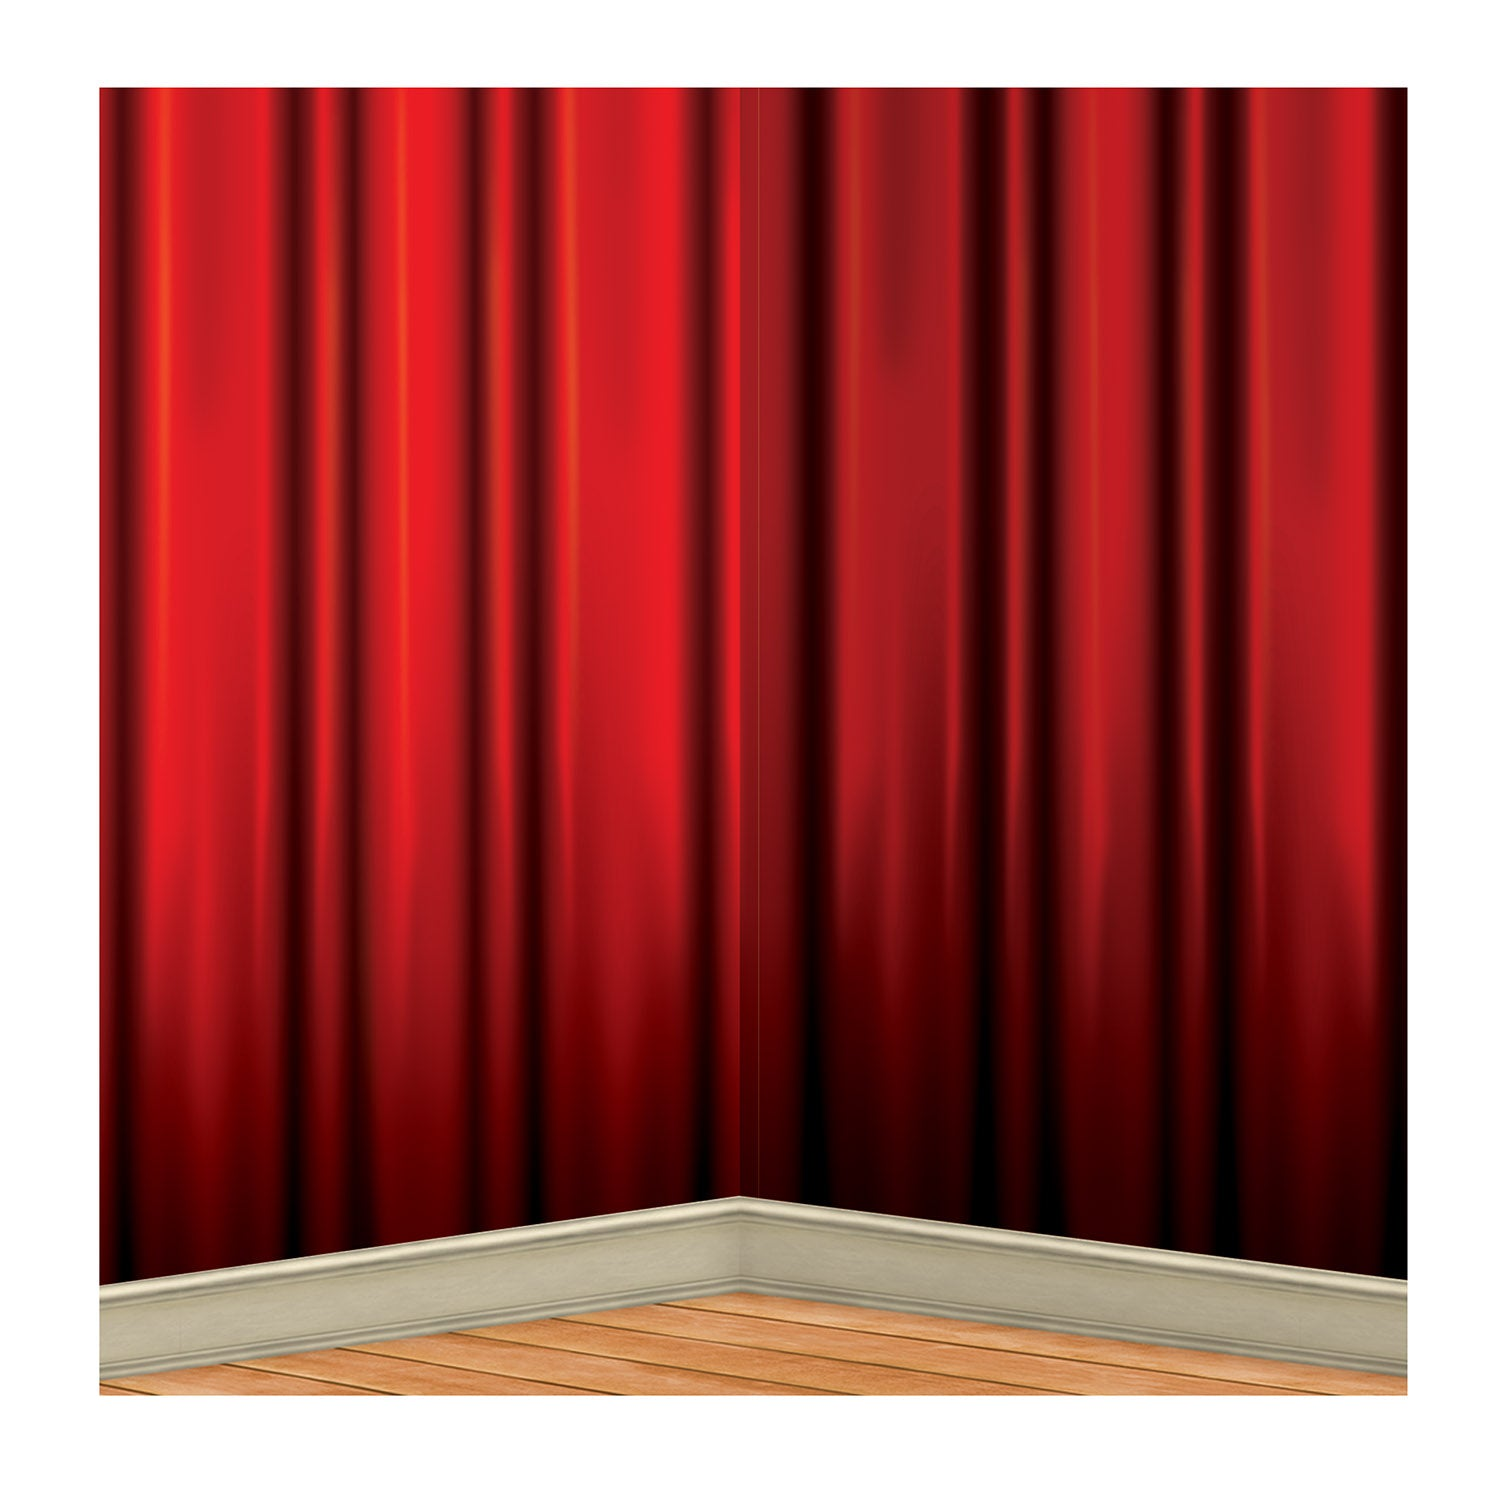 Red Curtain Backdrop by Beistle - Awards Night Theme Decorations